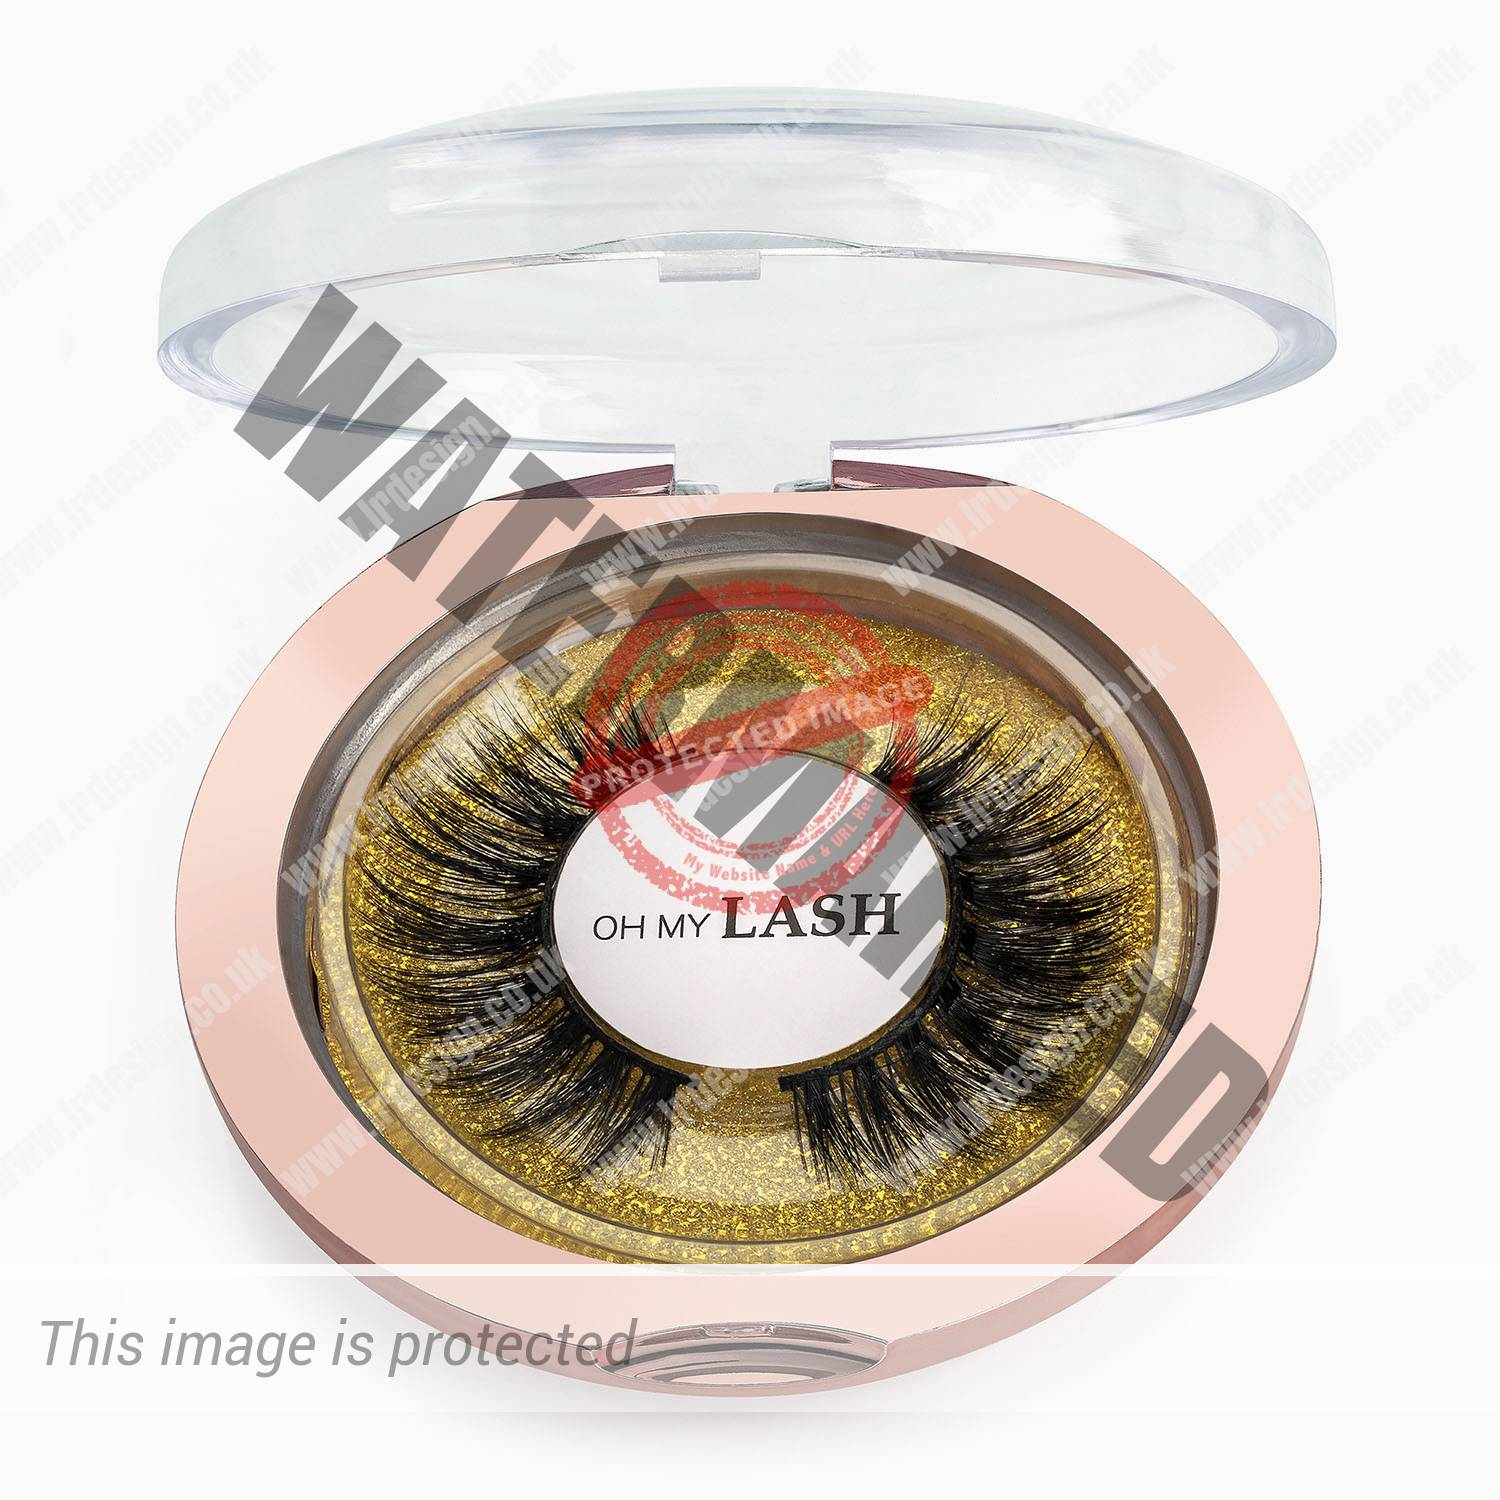 Close up of Oh My Lash gold compact.